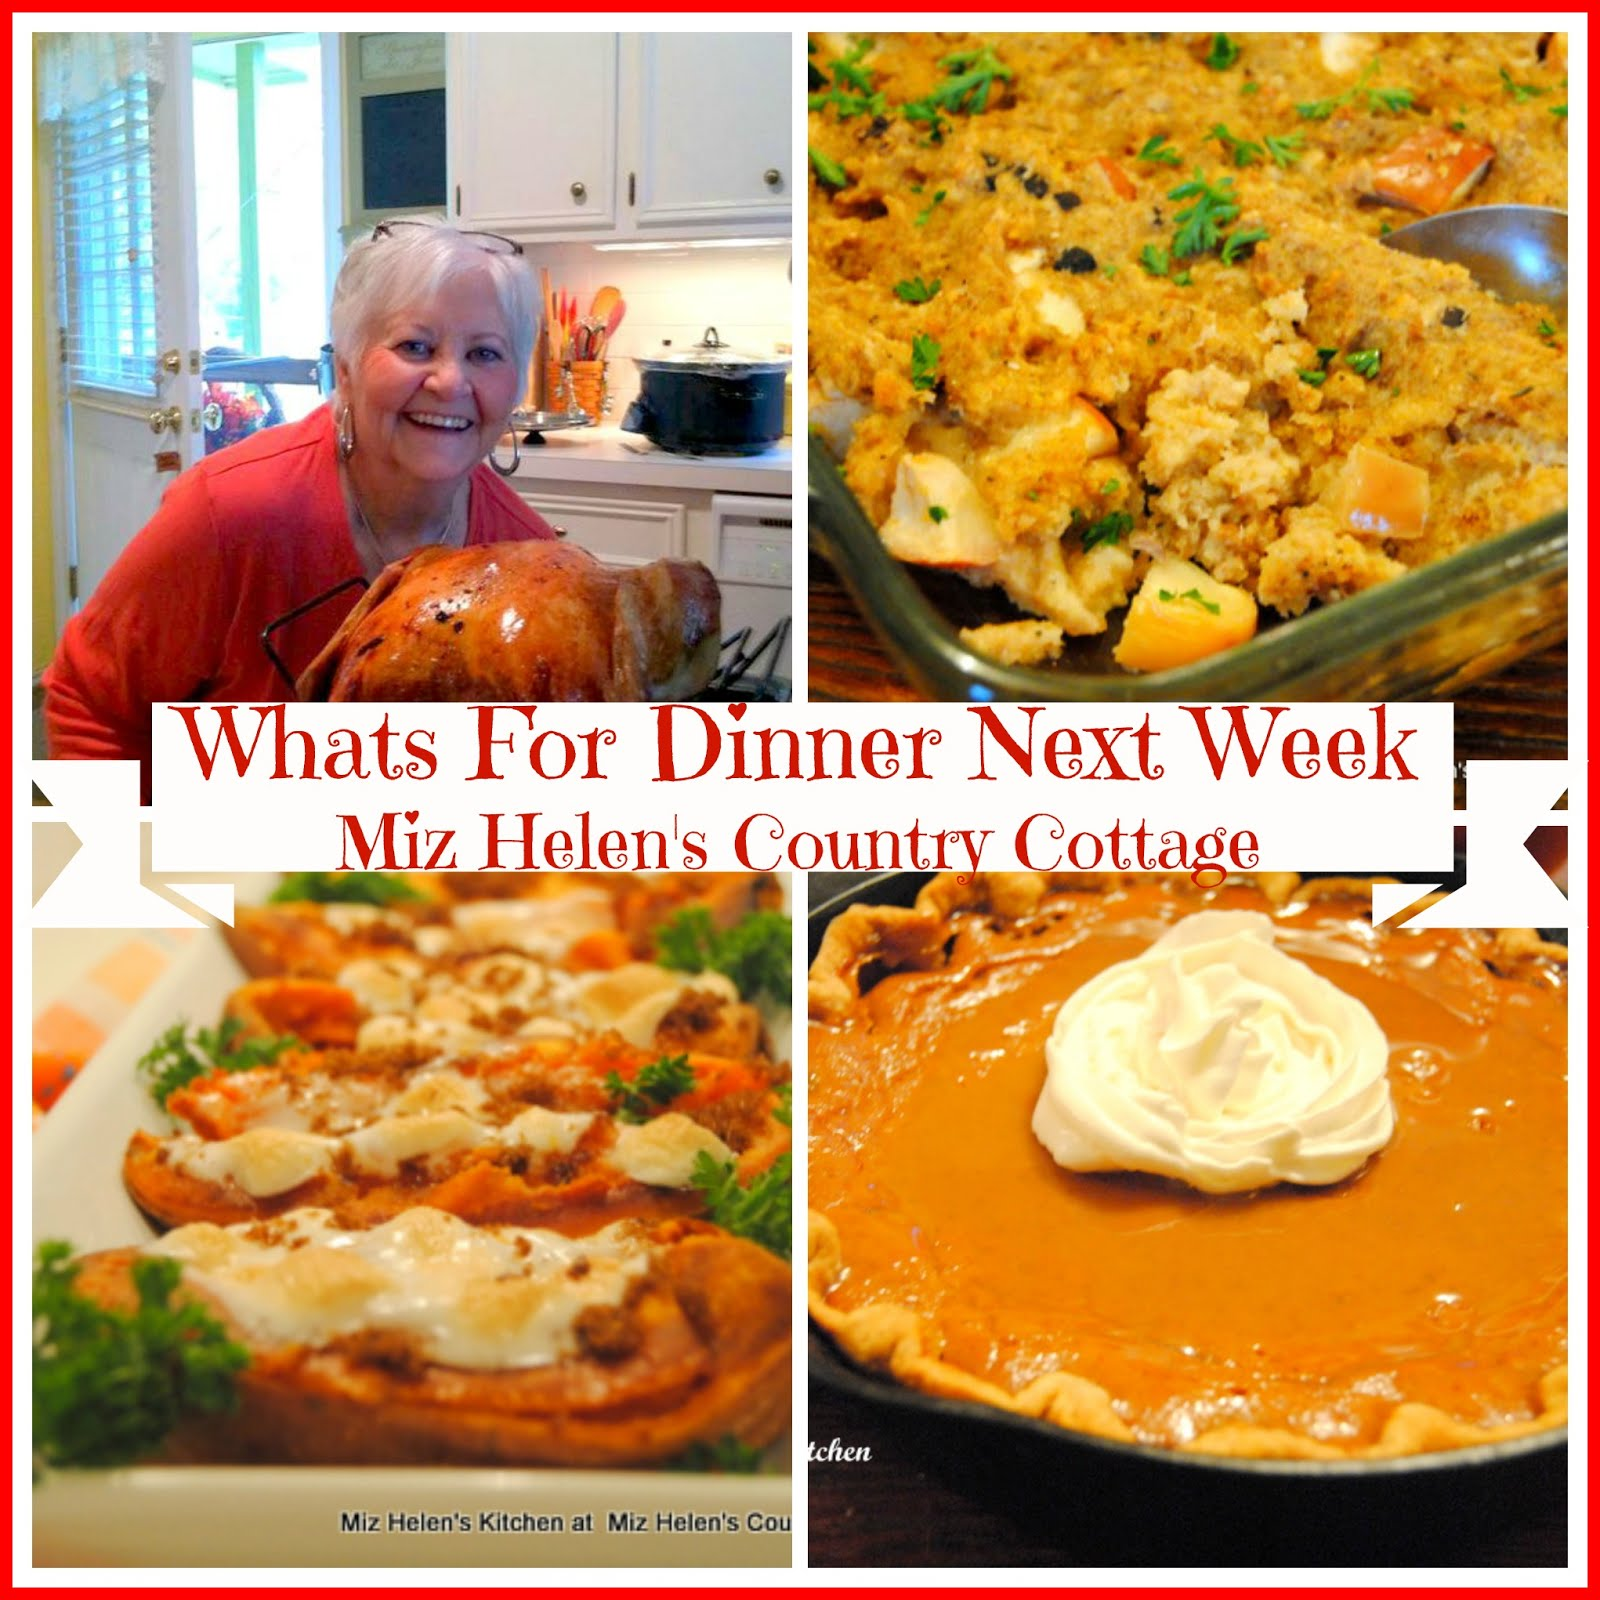 Whats For Dinner Next Week * Week of 11-18-18